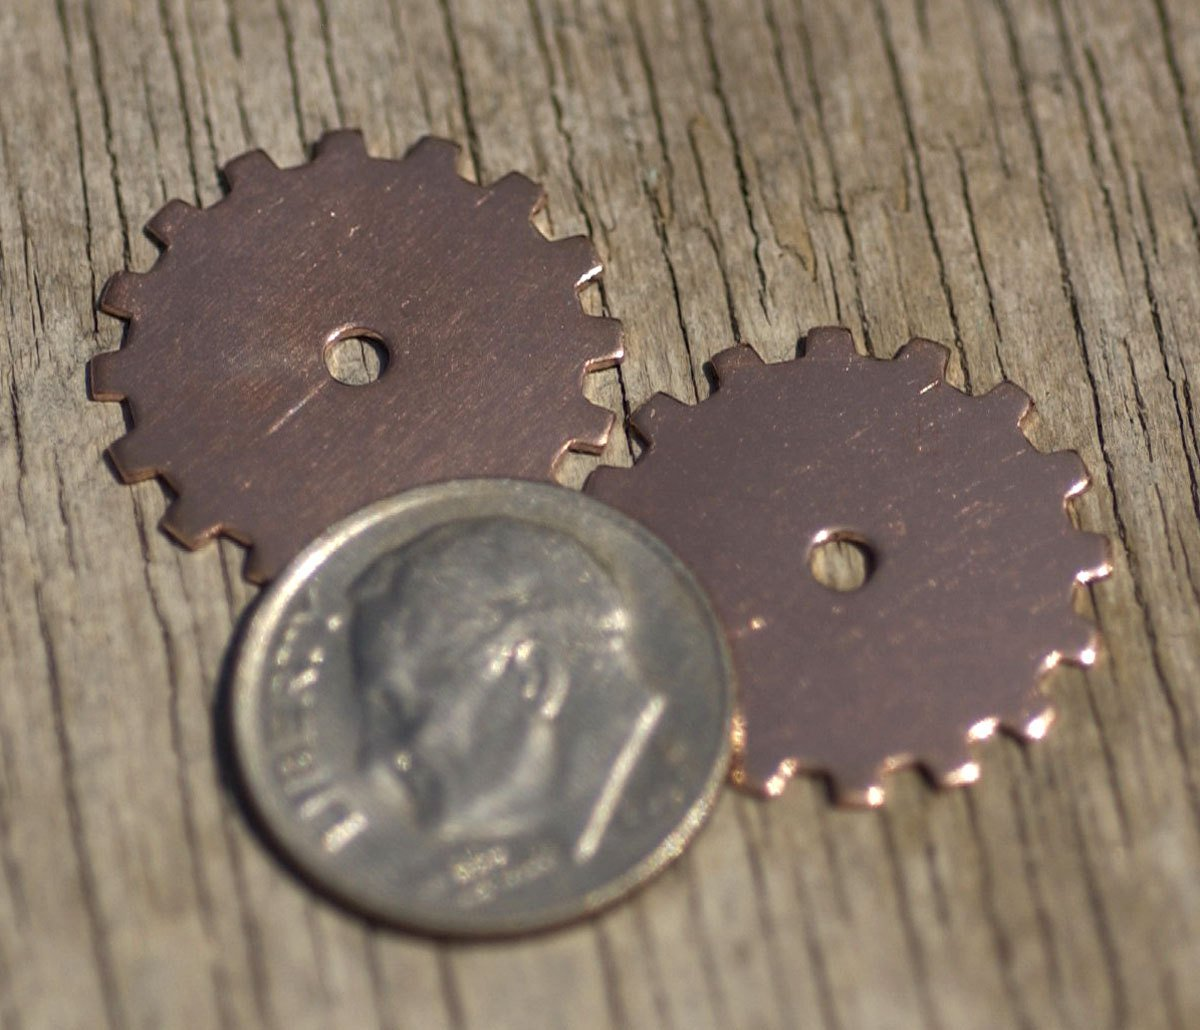 Copper Gear Blank 19mm with 2mm Cutout for Blanks Enameling Stamping Texturing - 6 pieces